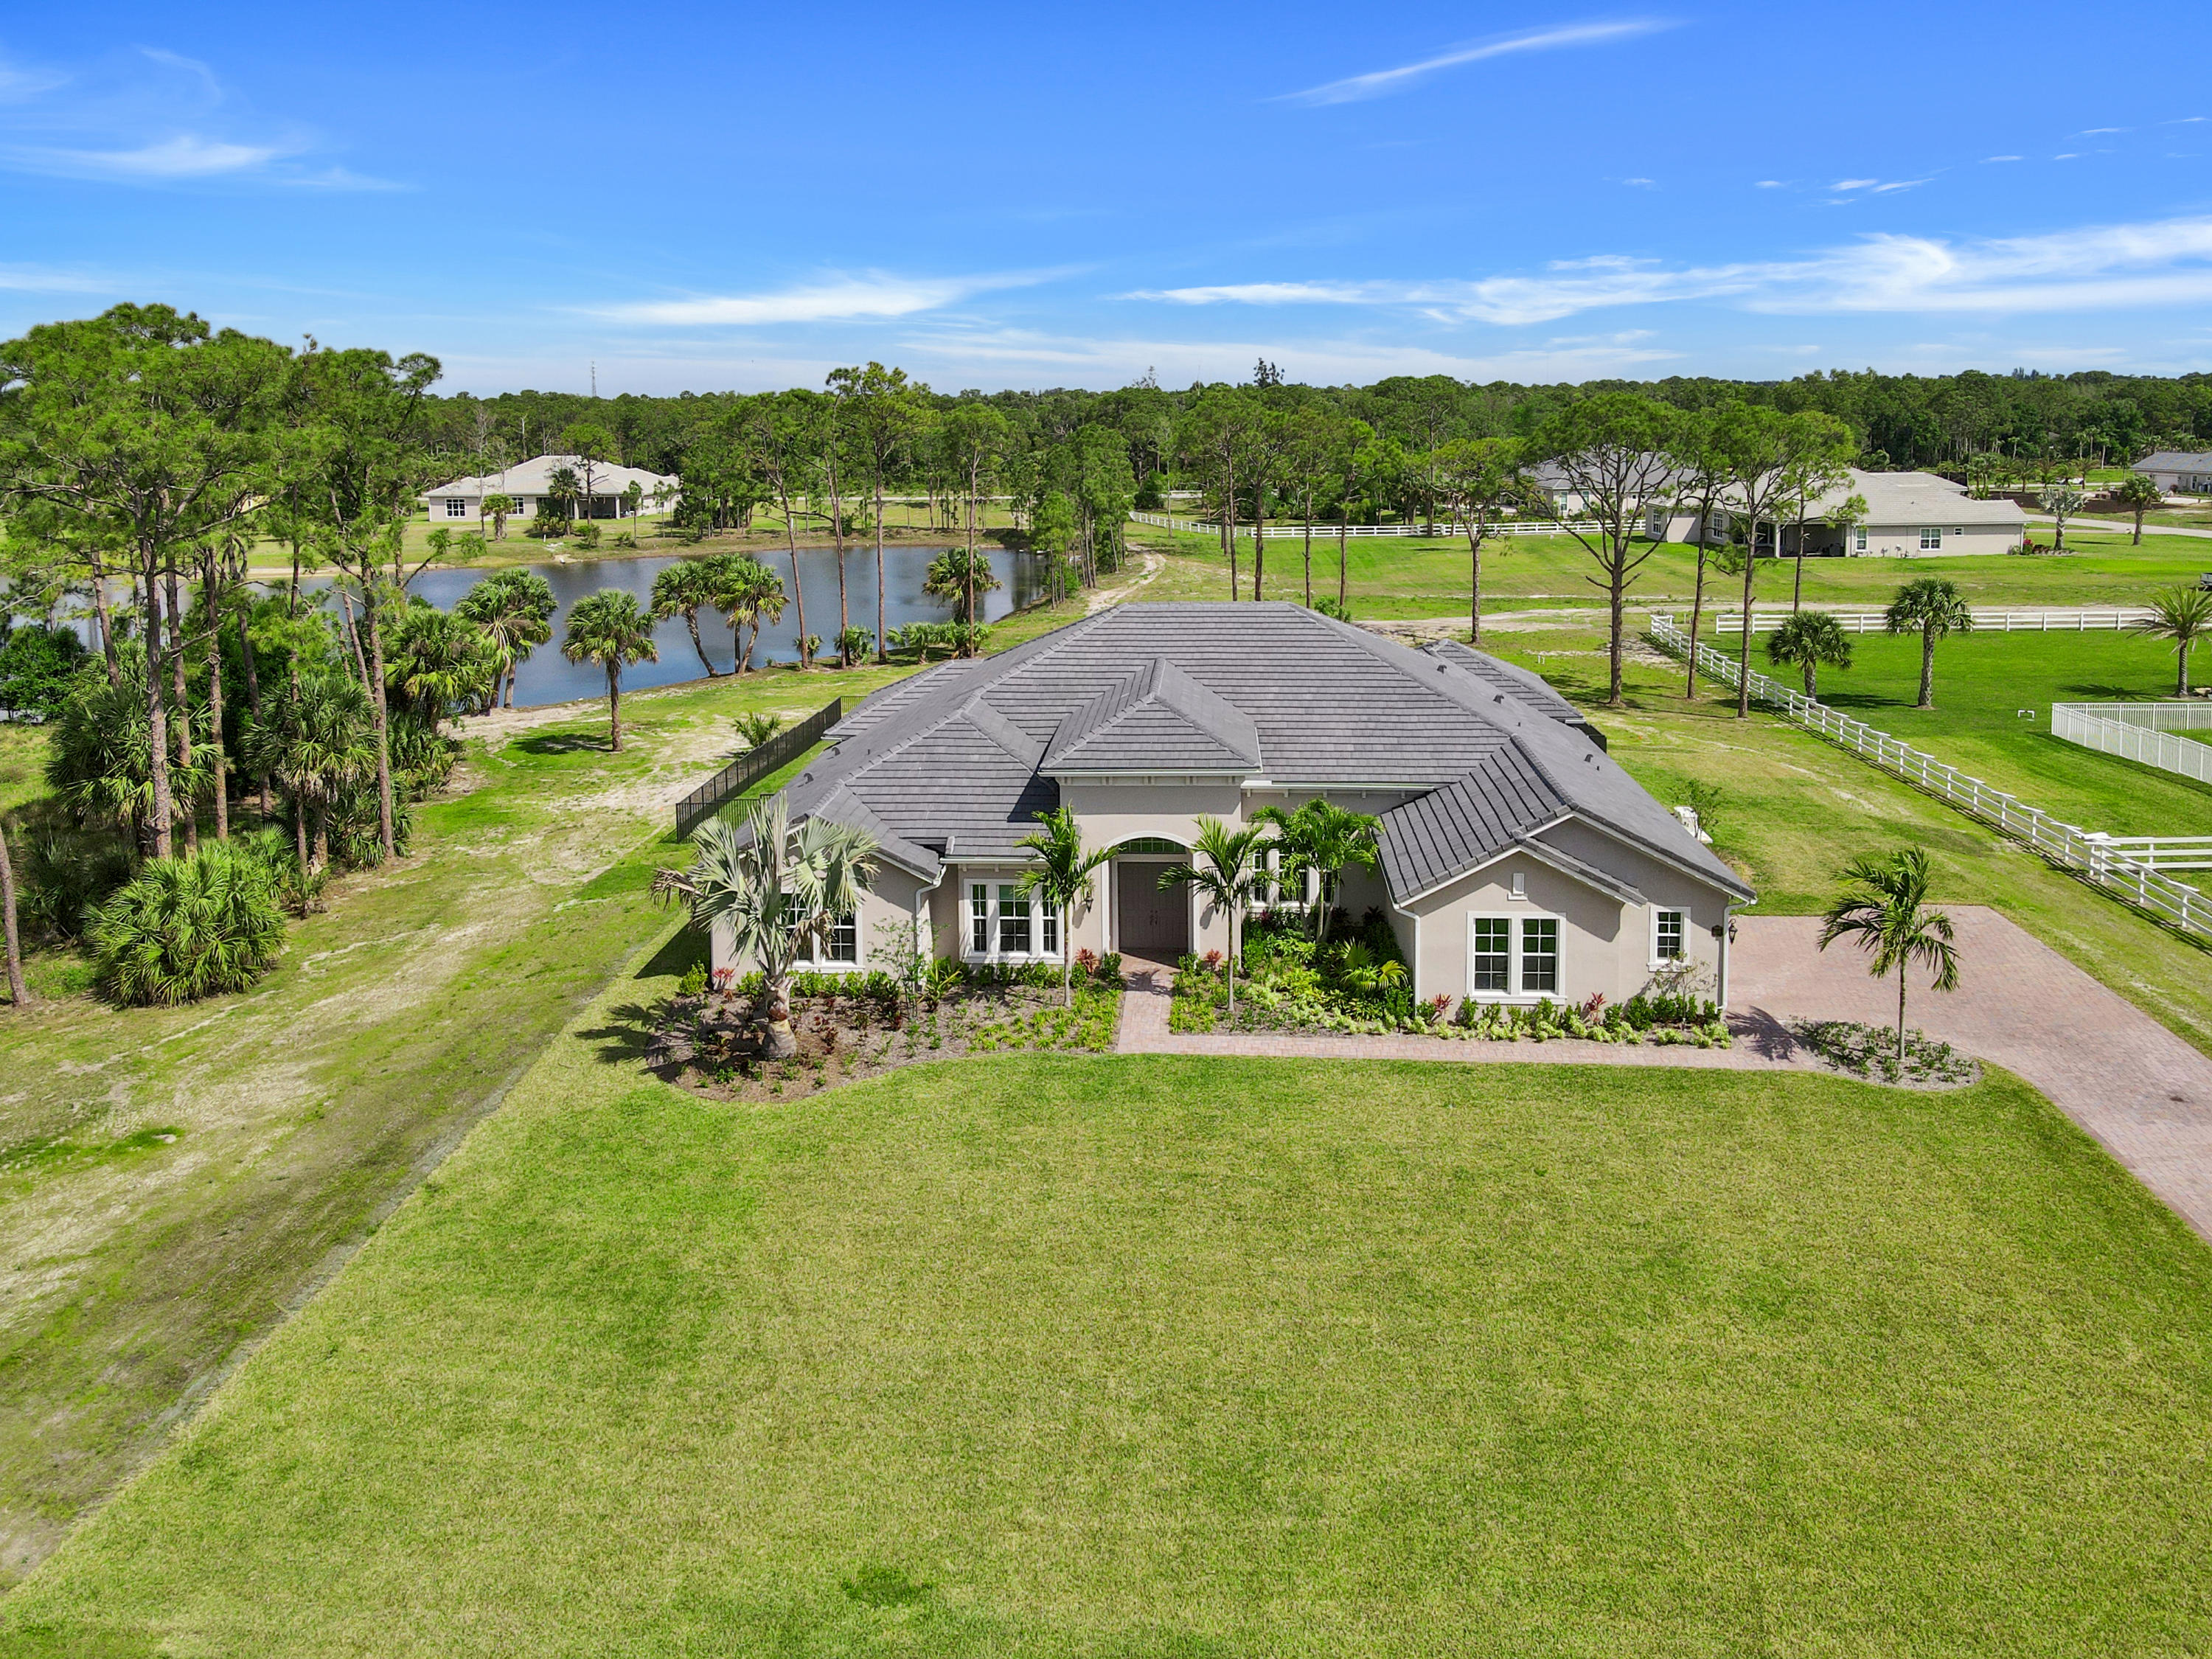 Stunning, new construction, 4 bedrooms, 3.5 baths, 3 car garage home on 1.52 acres in exclusive Reynolds Ranch. This home is on a very private waterfront lot abutting a preserves. Features include luxurious interiors, soaring 12' coffered ceilings, hard wood flooring, designer kitchen with solid wood cabinets, quartz counter tops, high end stainless appliances, double oven, gas stove and dryer. Additional features include a 1,000 gallon propane tank, 22KW Generac standby generator, instant heat water system and high performance impact glass and HERS certified. Relax and enjoy the large back yard overlooking the lake with the extended lanai, paver patio deck and aluminum pool fence. Reynolds Ranch is a gated community built on Burt Reynolds former 150-acre ranch... with two beautiful lakes, horse paddock, 4 miles of multi-use trails, day time riding. No horses overnight.